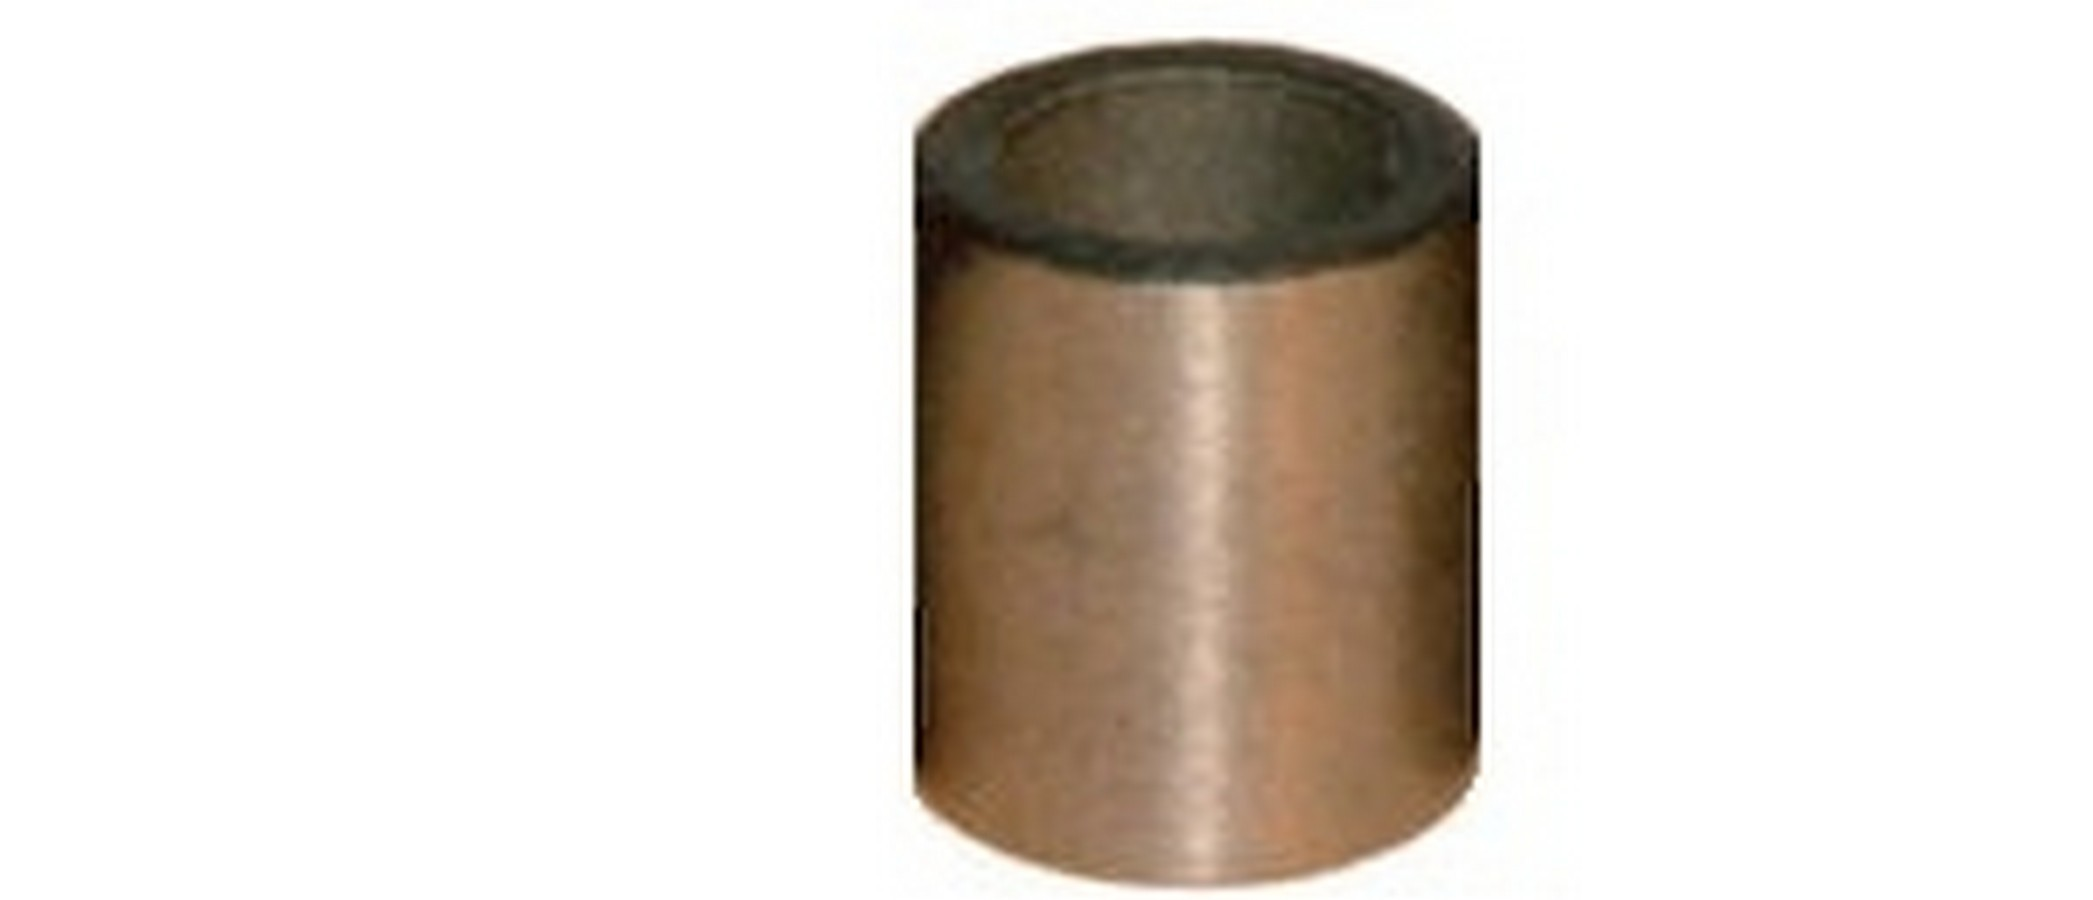 A-1 Products 3/4 to 1/2 Reducer Bushi